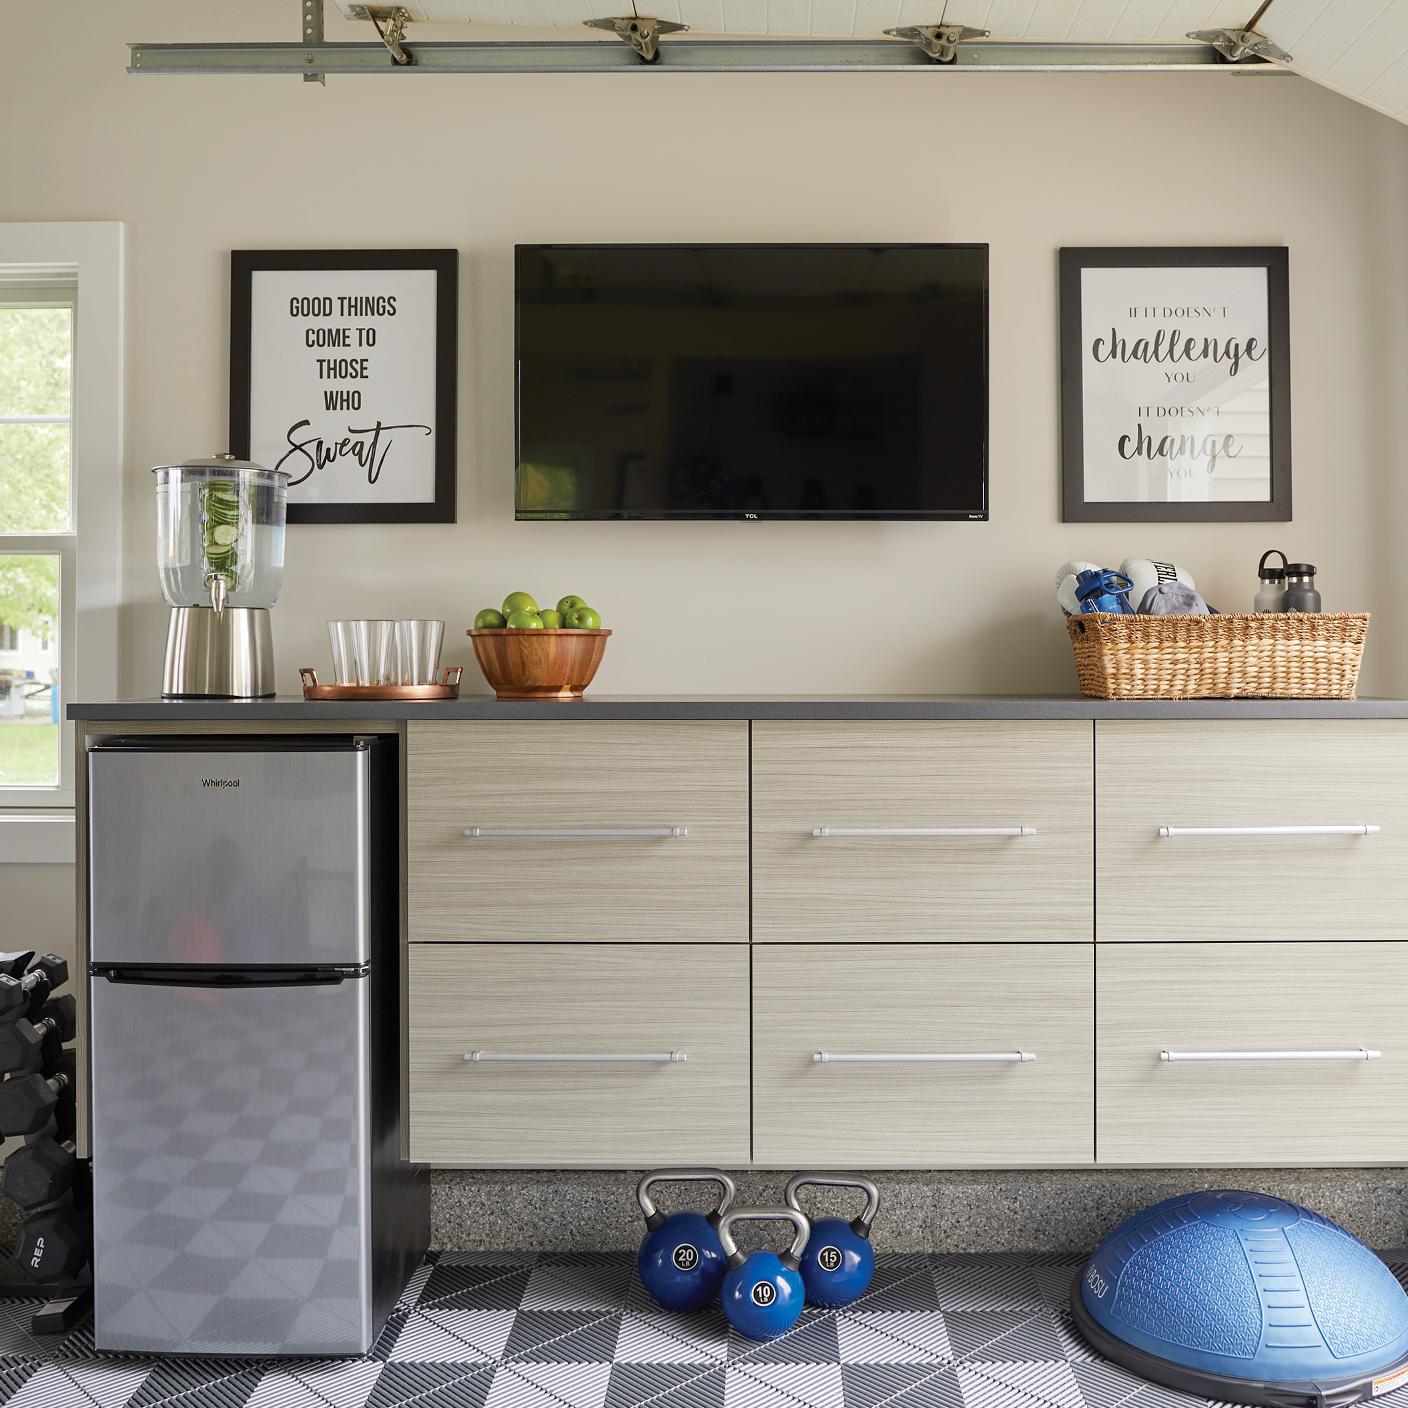 Garage work out stations designed by Inspired Closets